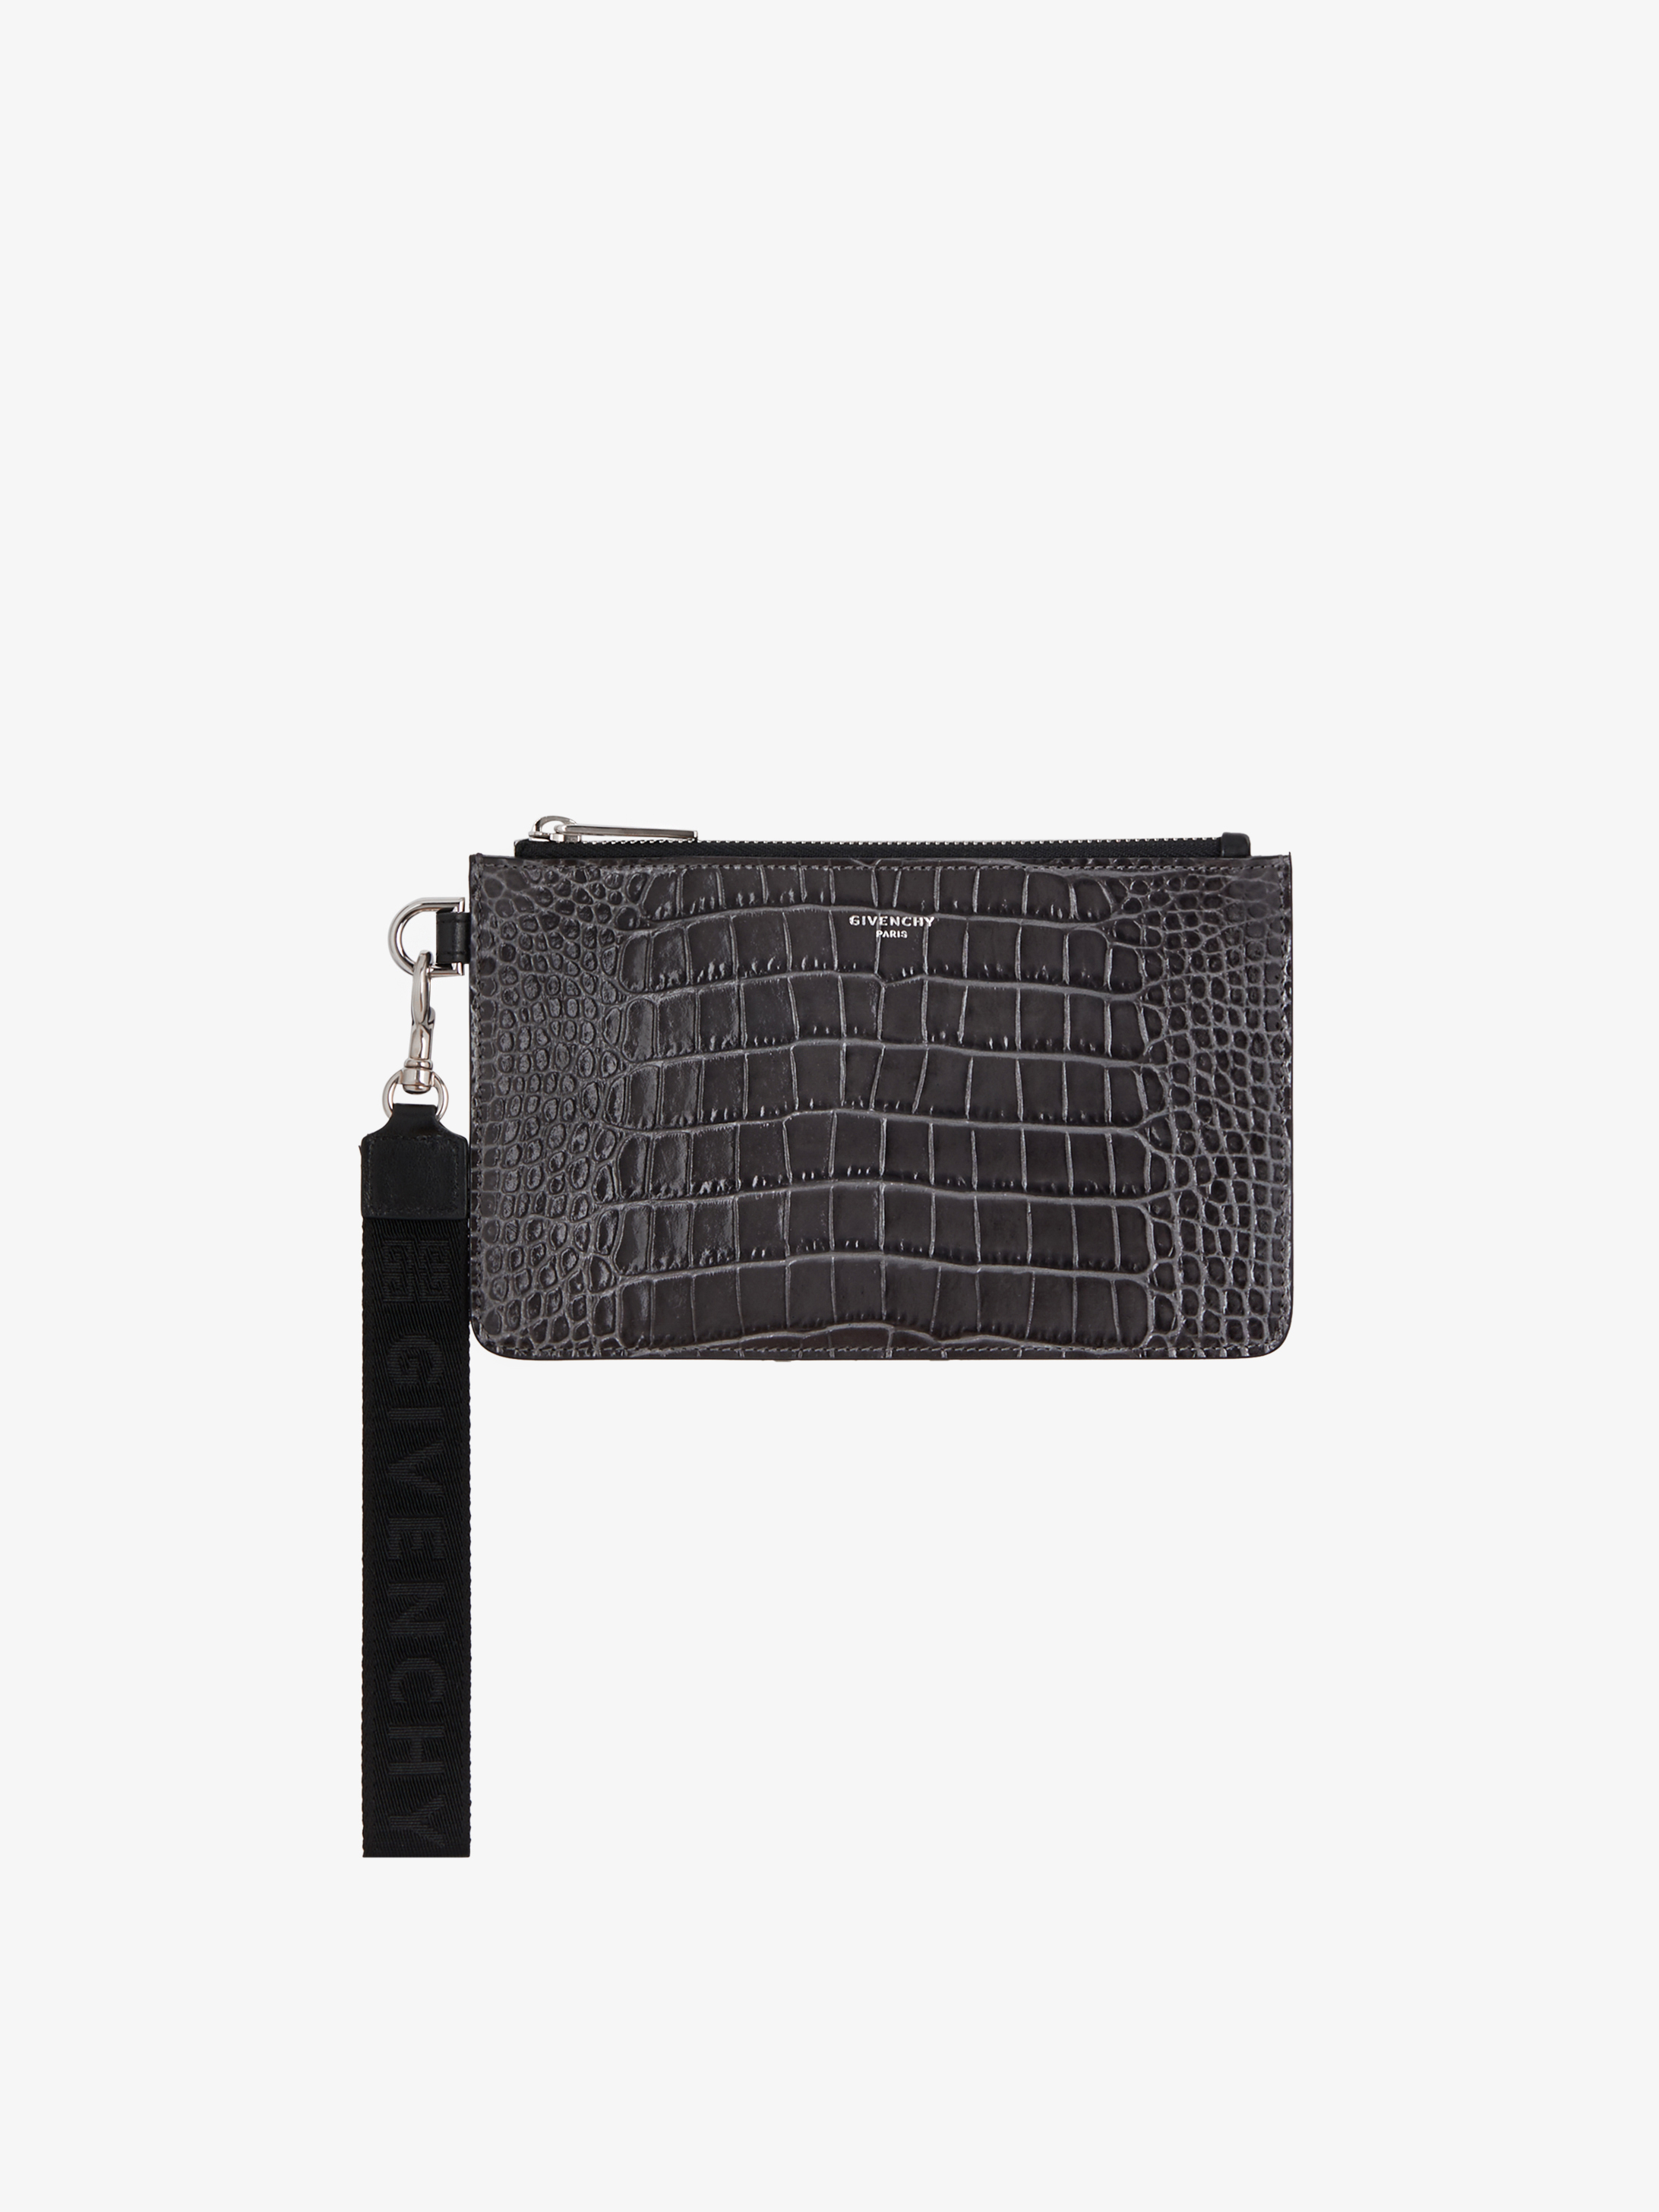 GIVENCHY 4G wrist strap mini pouch in crocodile effect leather